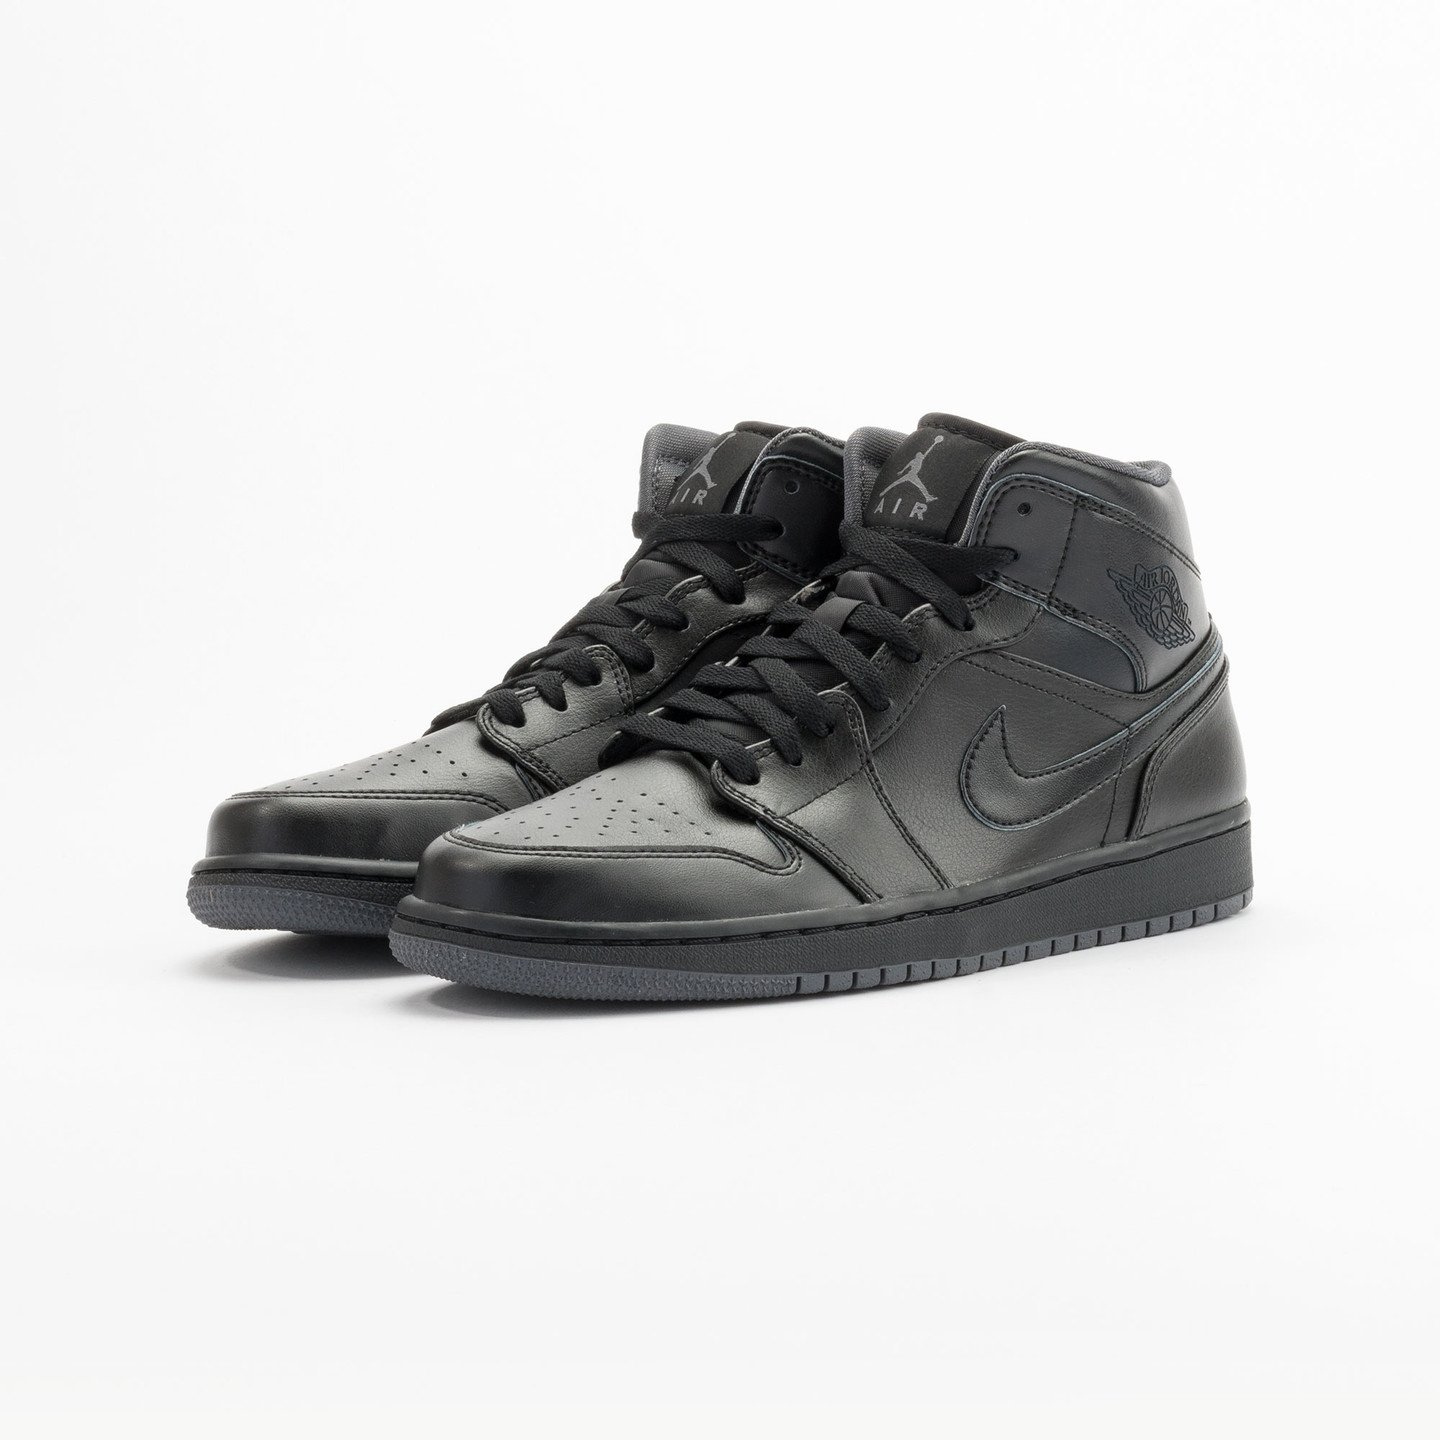 Nike Air Jordan 1 Mid Black / Dark Grey 554724-021-45